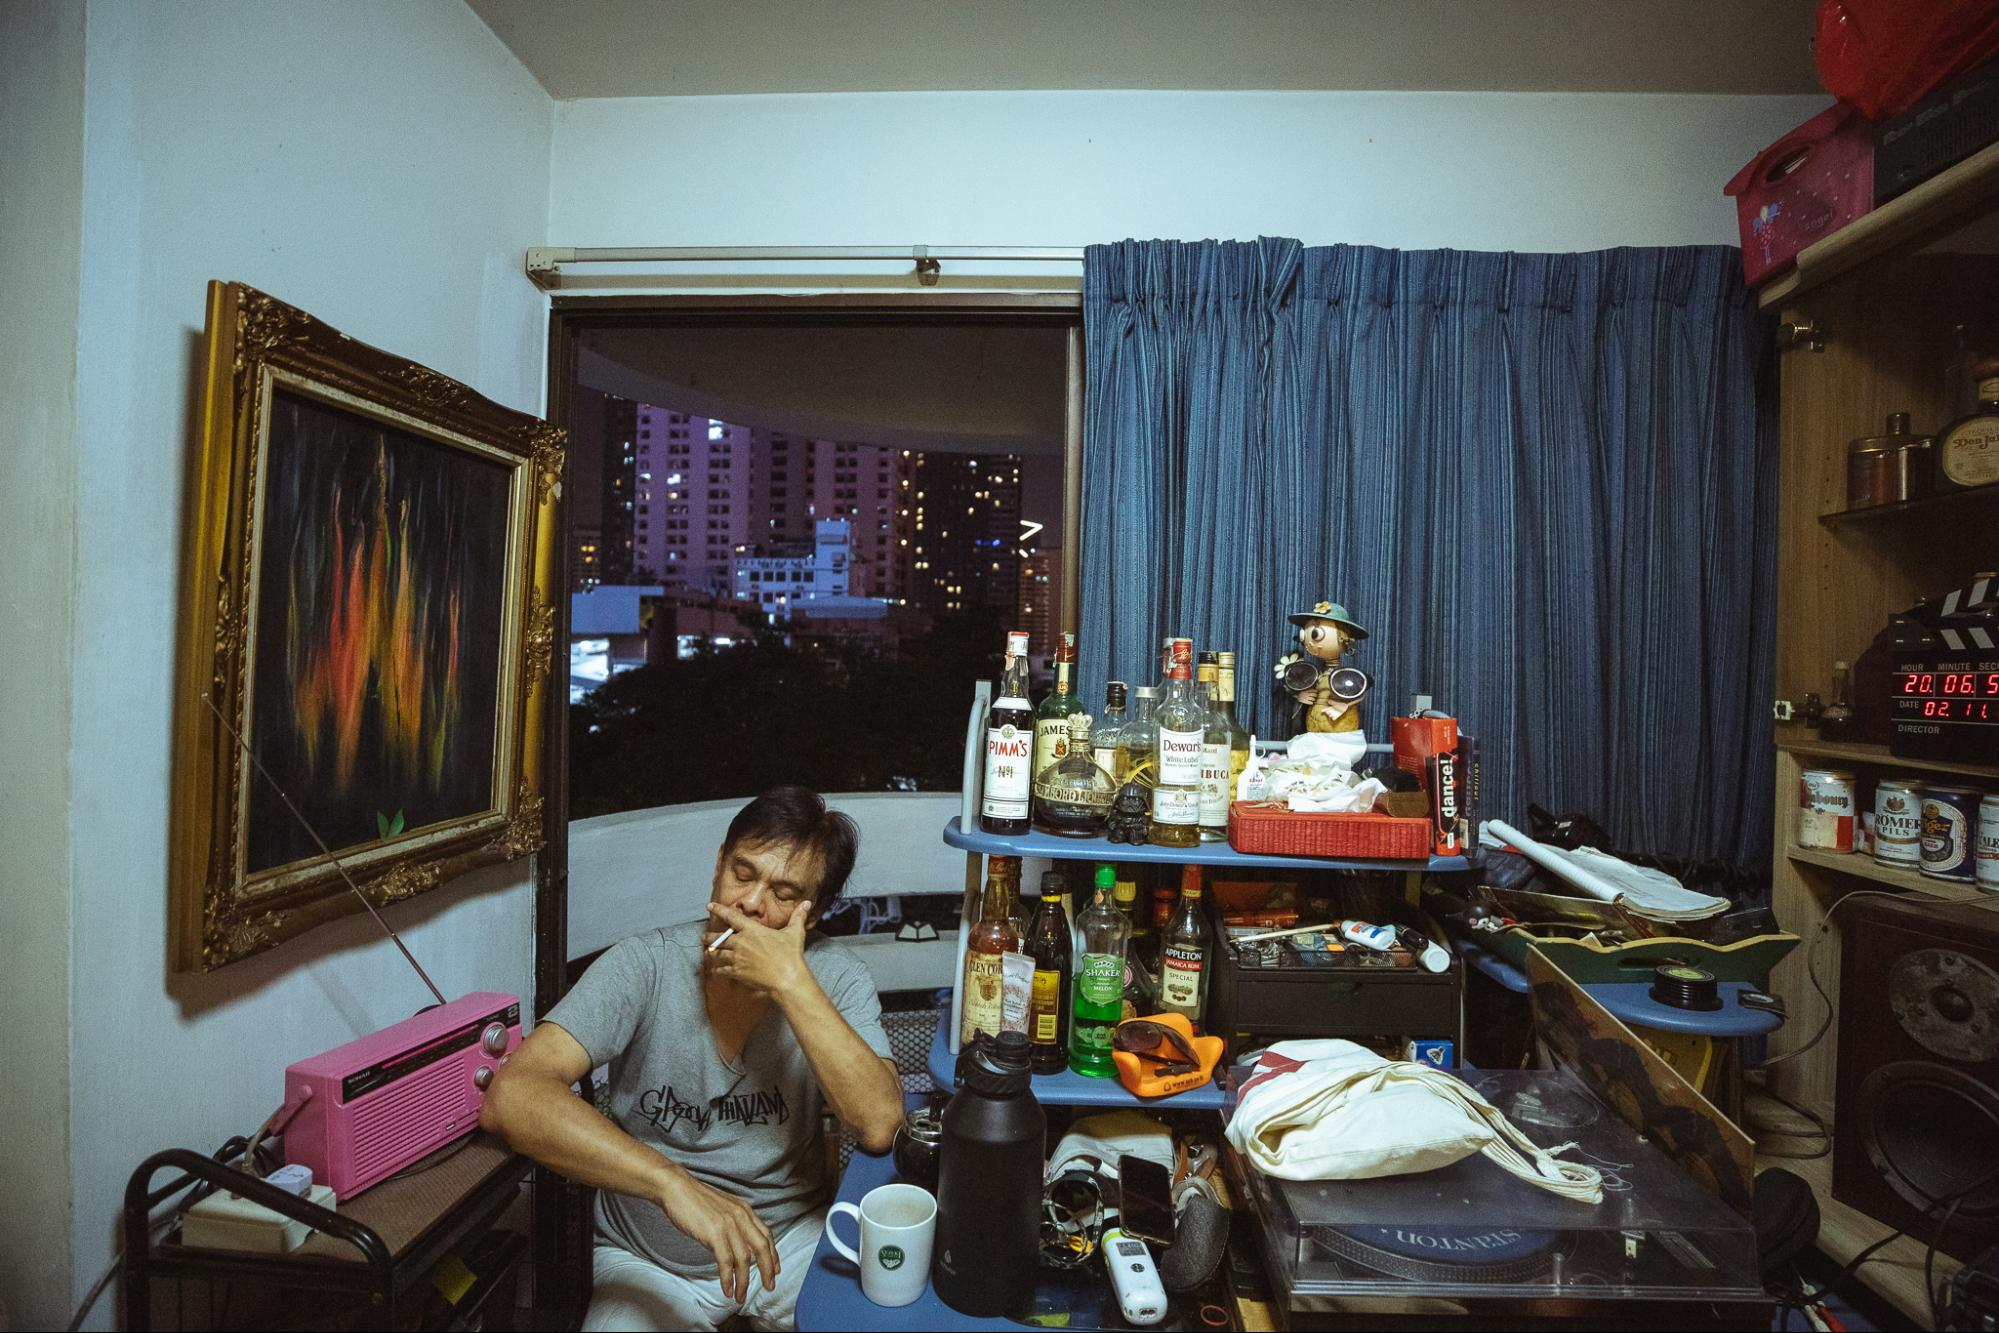 How Drugs Caused The Deaths of Club Culture And Bangkok's 90s Rave Scenes